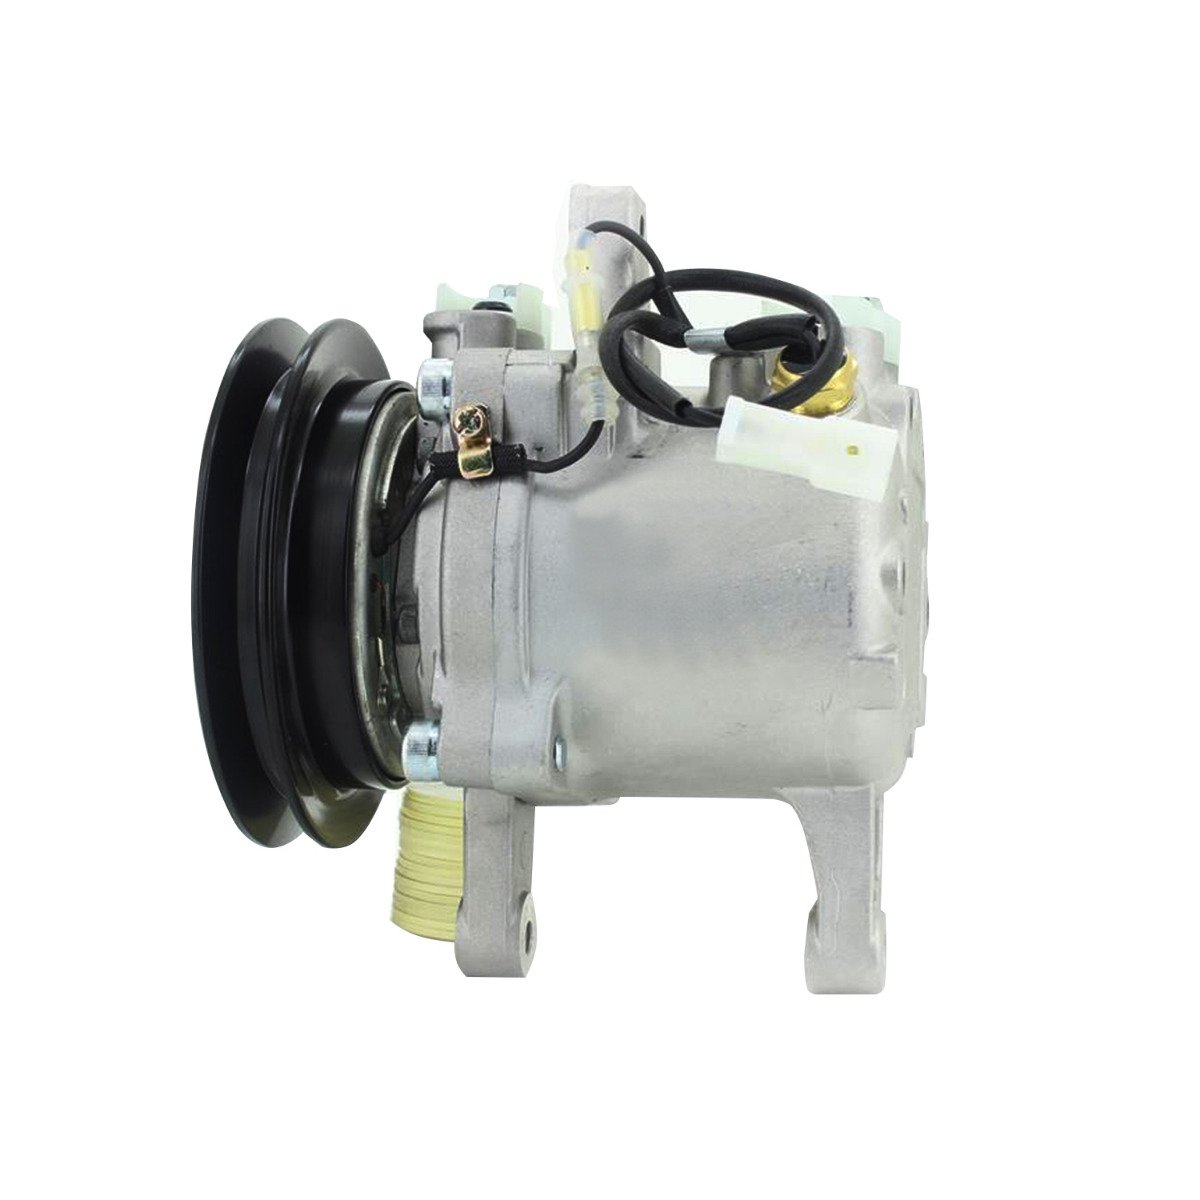 A/C Air Conditioning Compressor 447280-3050 Compatible with Kubota Tractor M126 M126XDTC M126GXDTC M135 M135DTSC